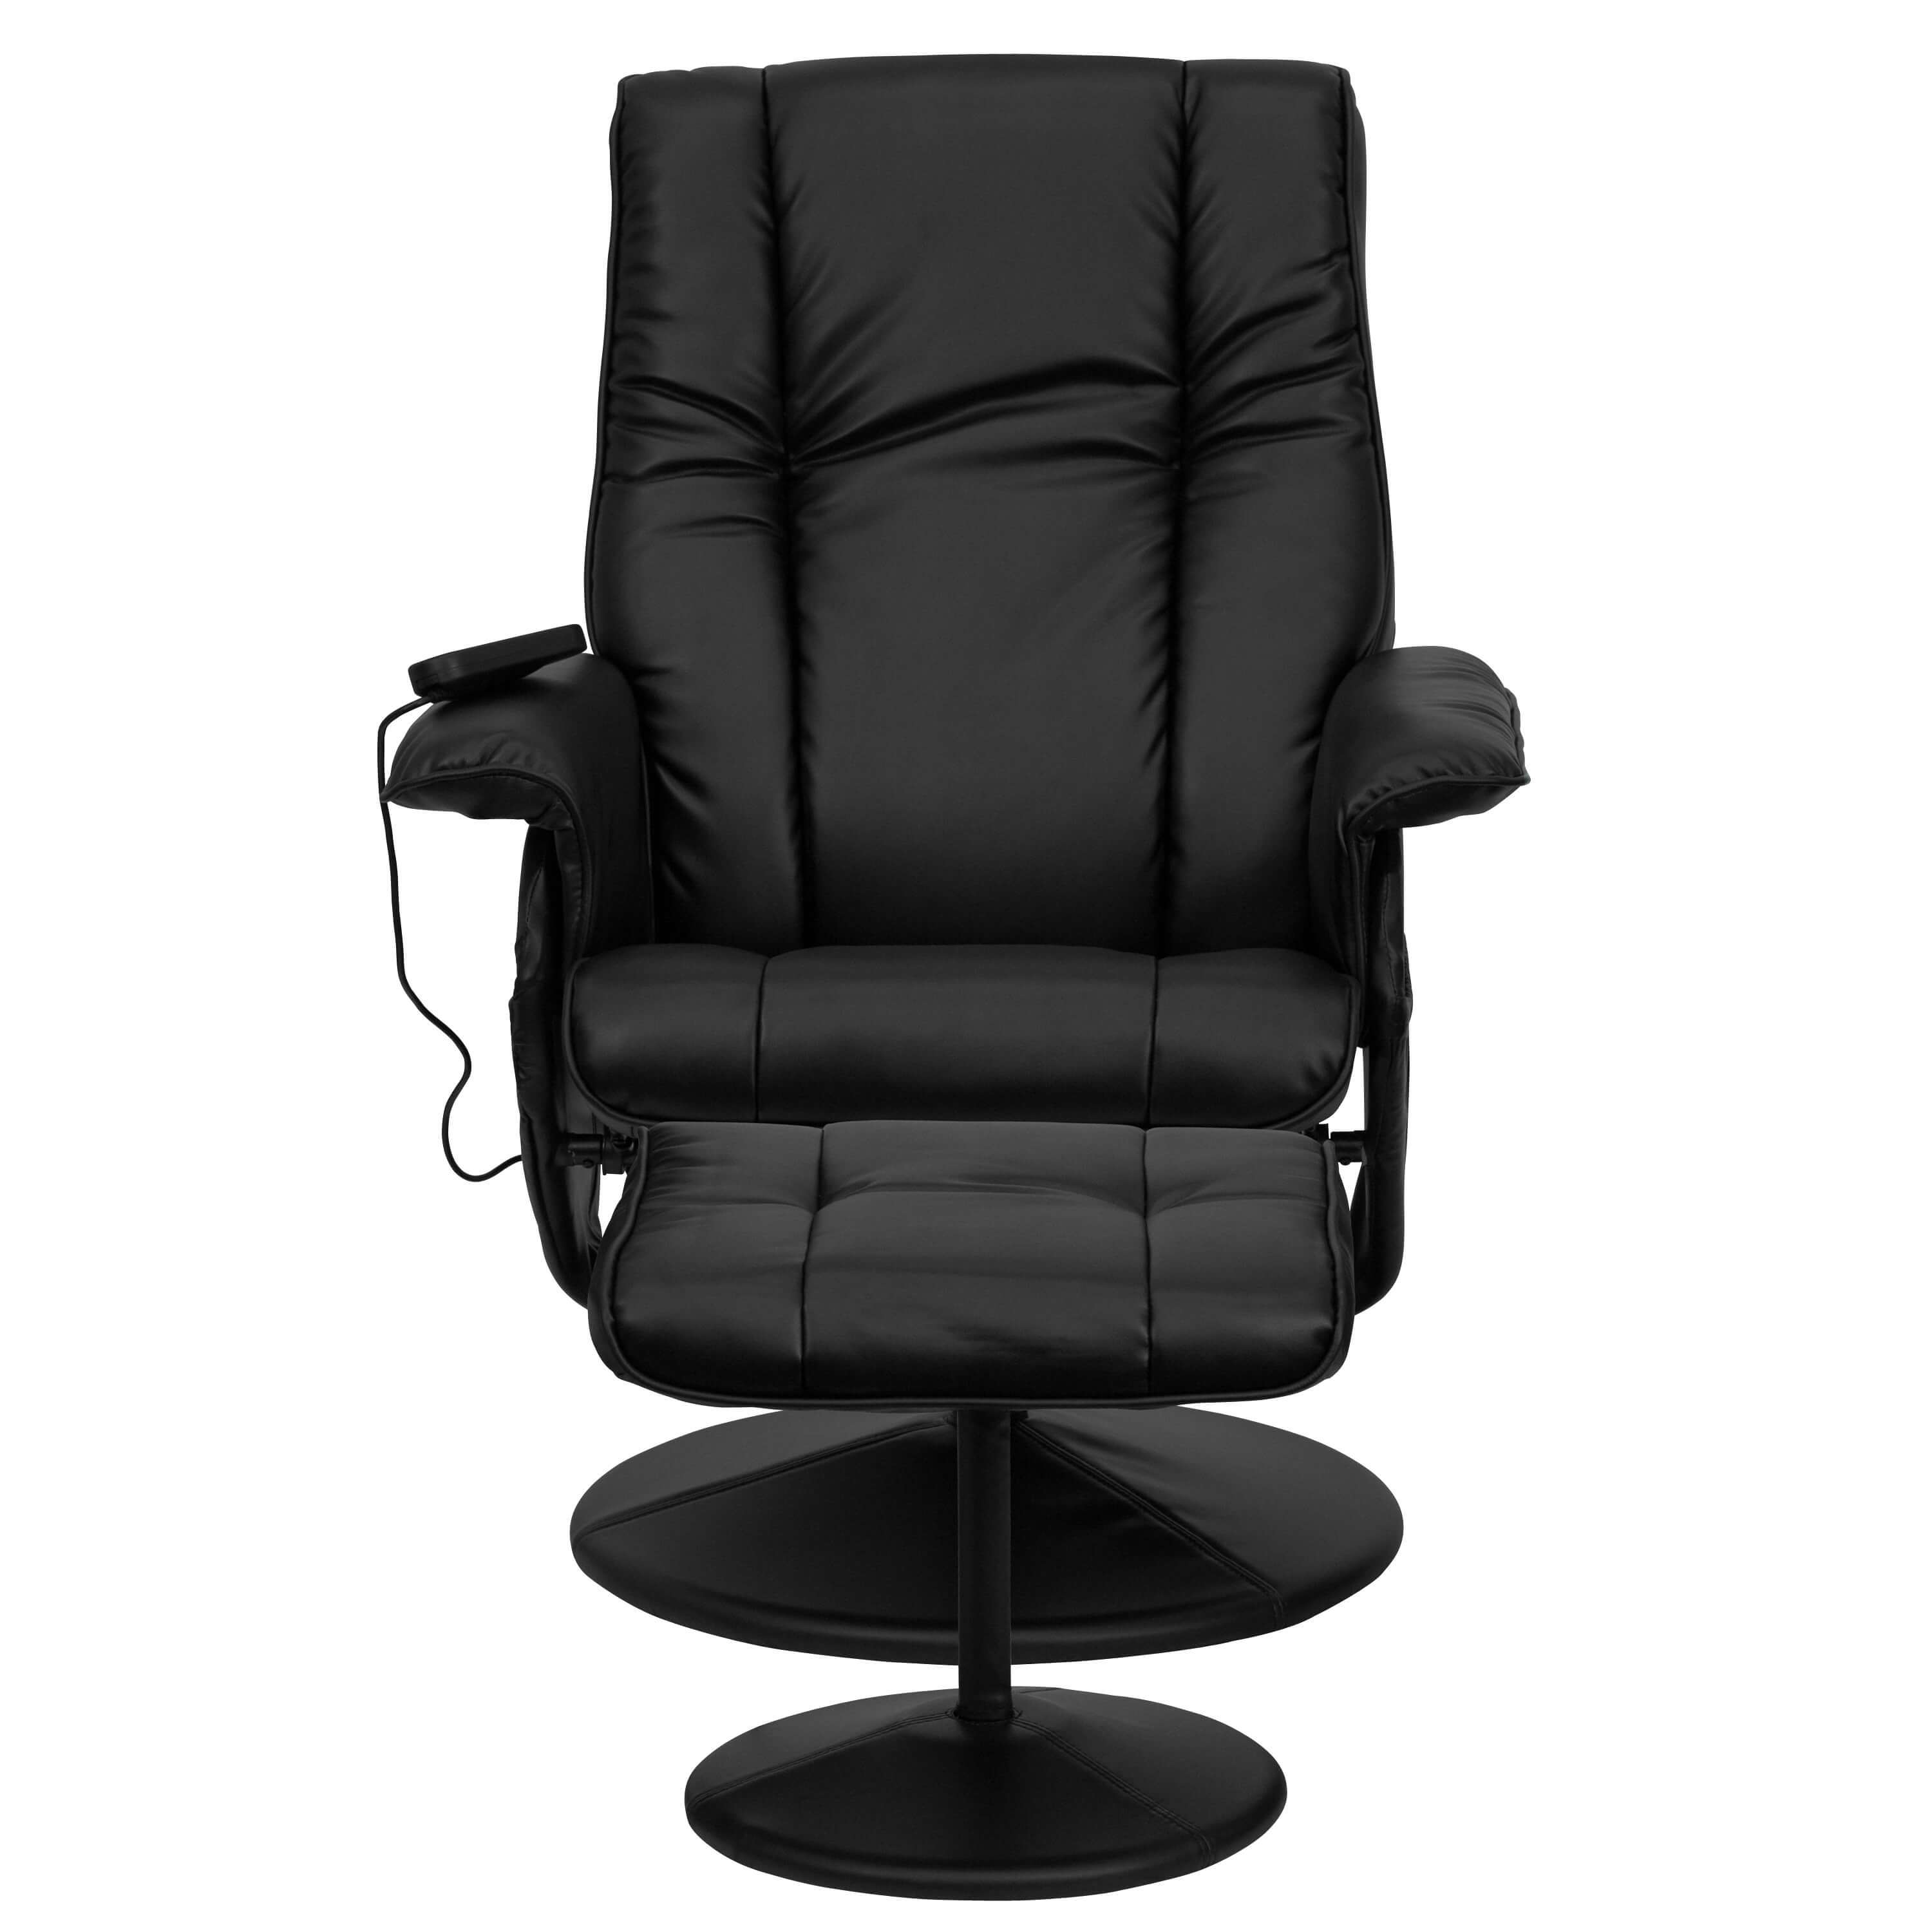 Recliner massage chair front view